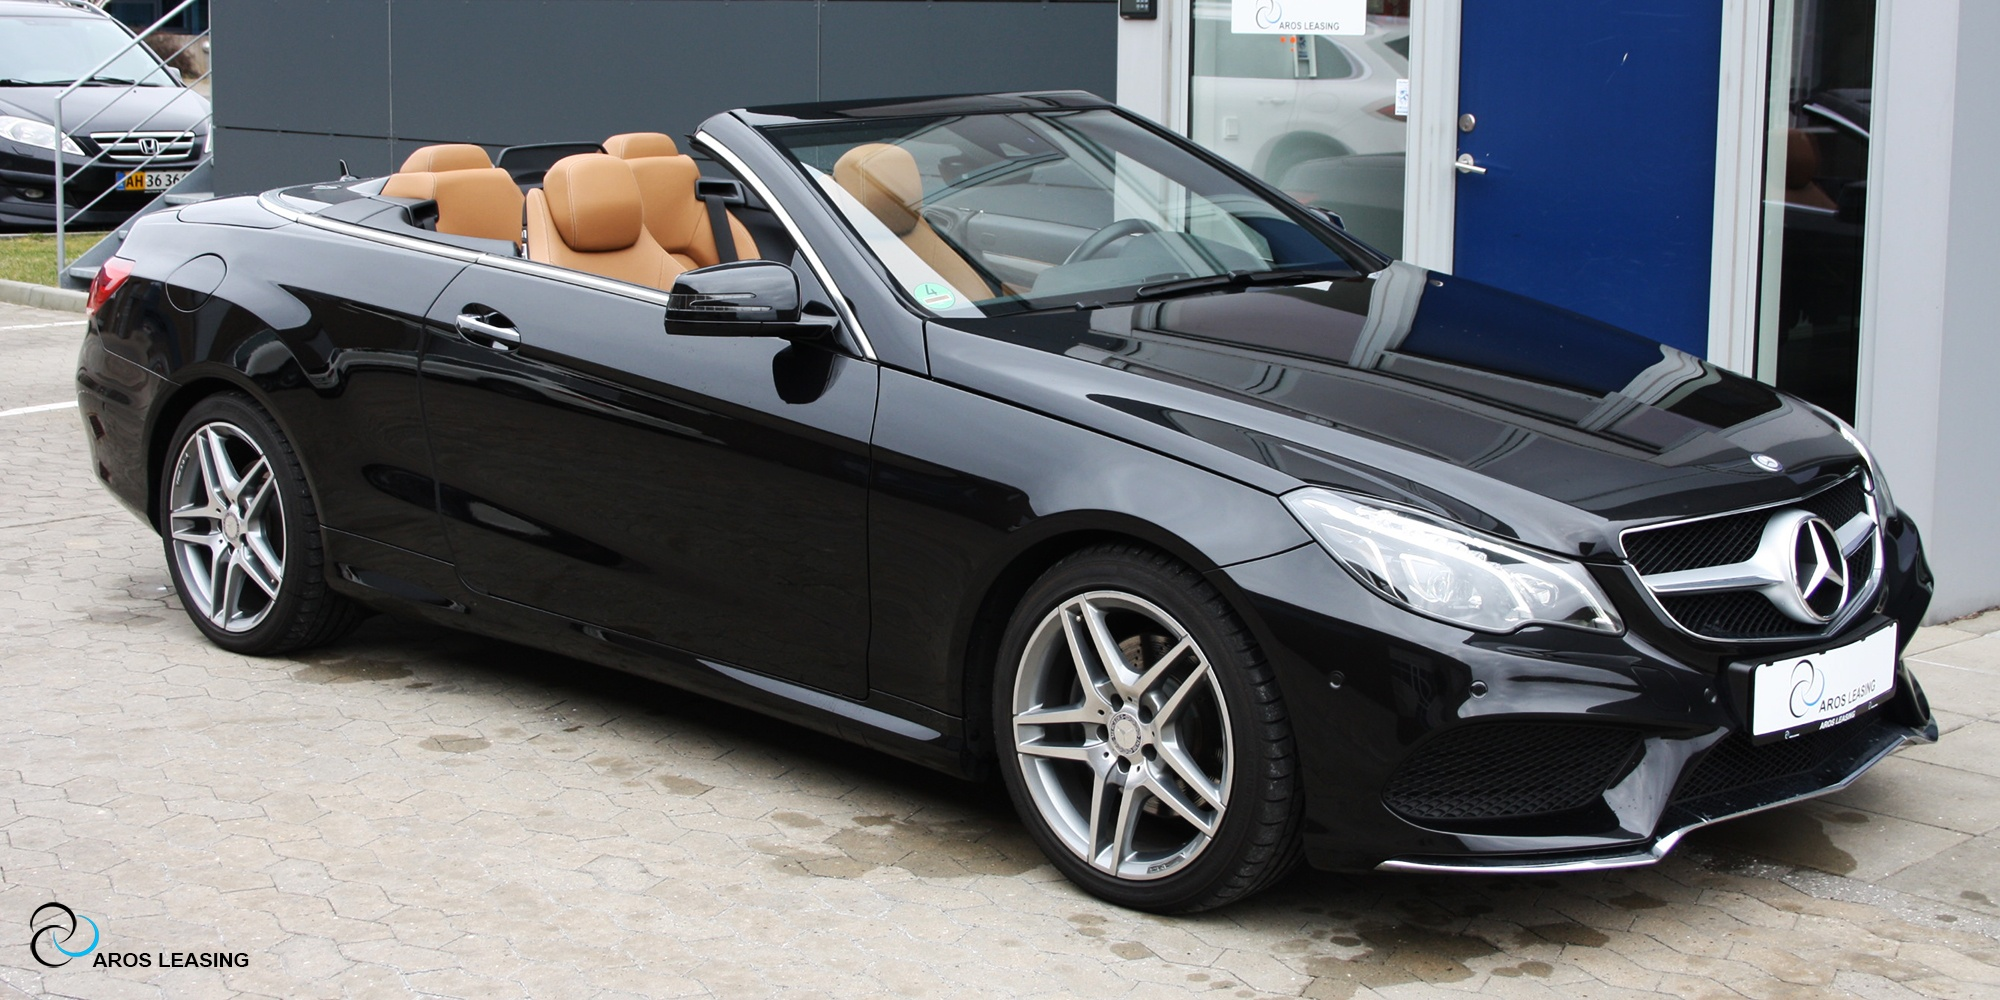 Mercedes benz e350 cdi cabriolet aros leasing for Mercedes benz e350 cabriolet